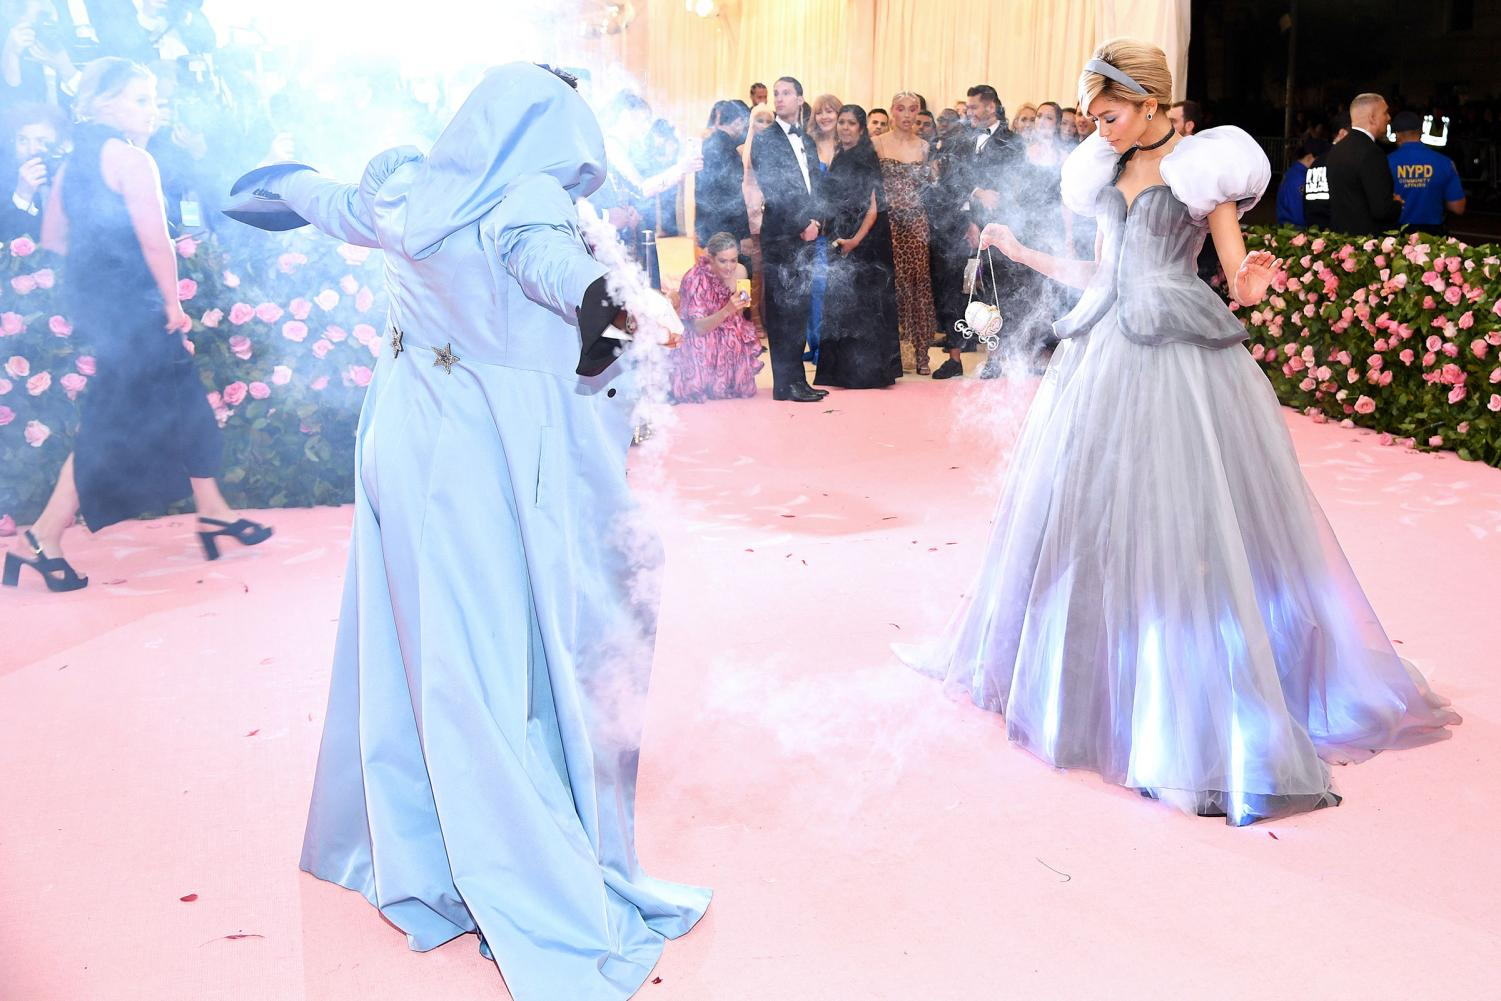 Actress and singer Zendaya puts on a performance in her Cinderella inspired gown with stylist Law Roach.